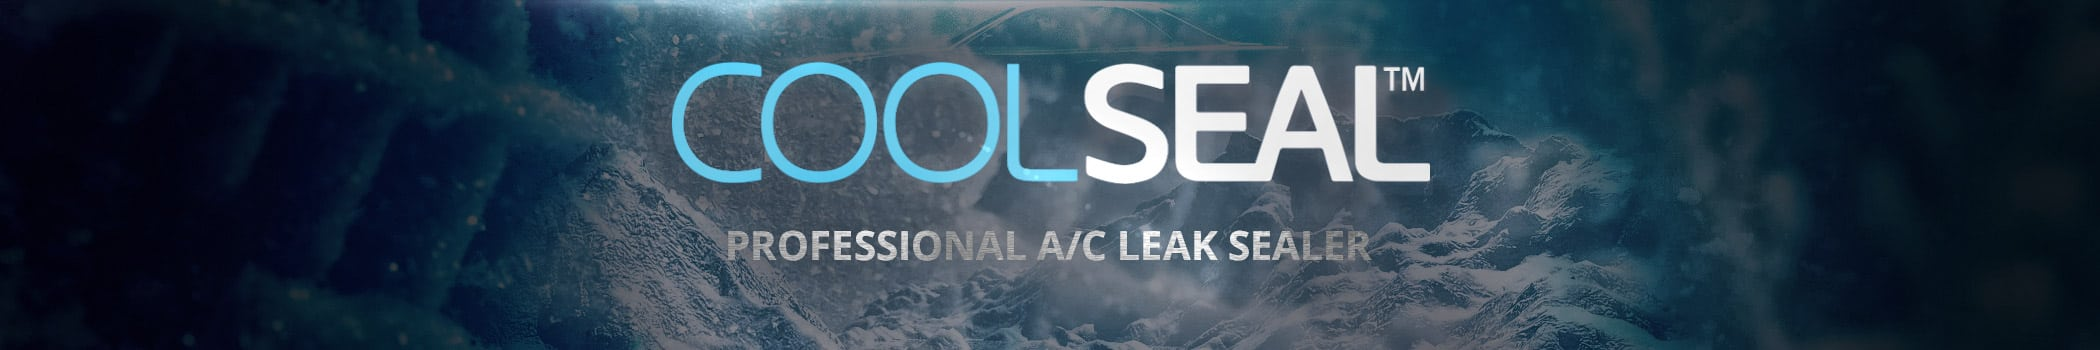 Professional A/C Leak Sealer